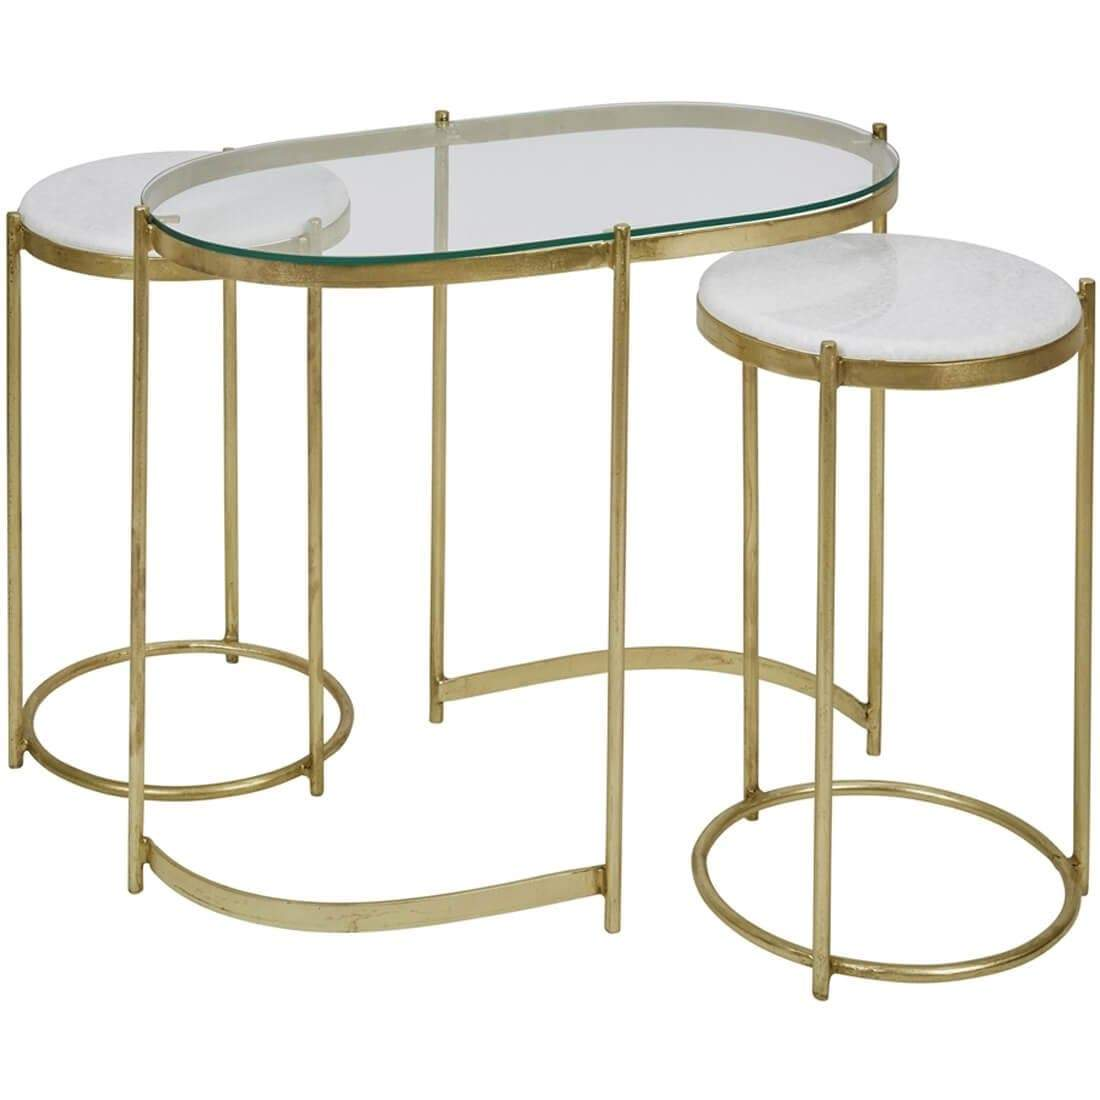 S/3 Iron Console/Side Table - Gold